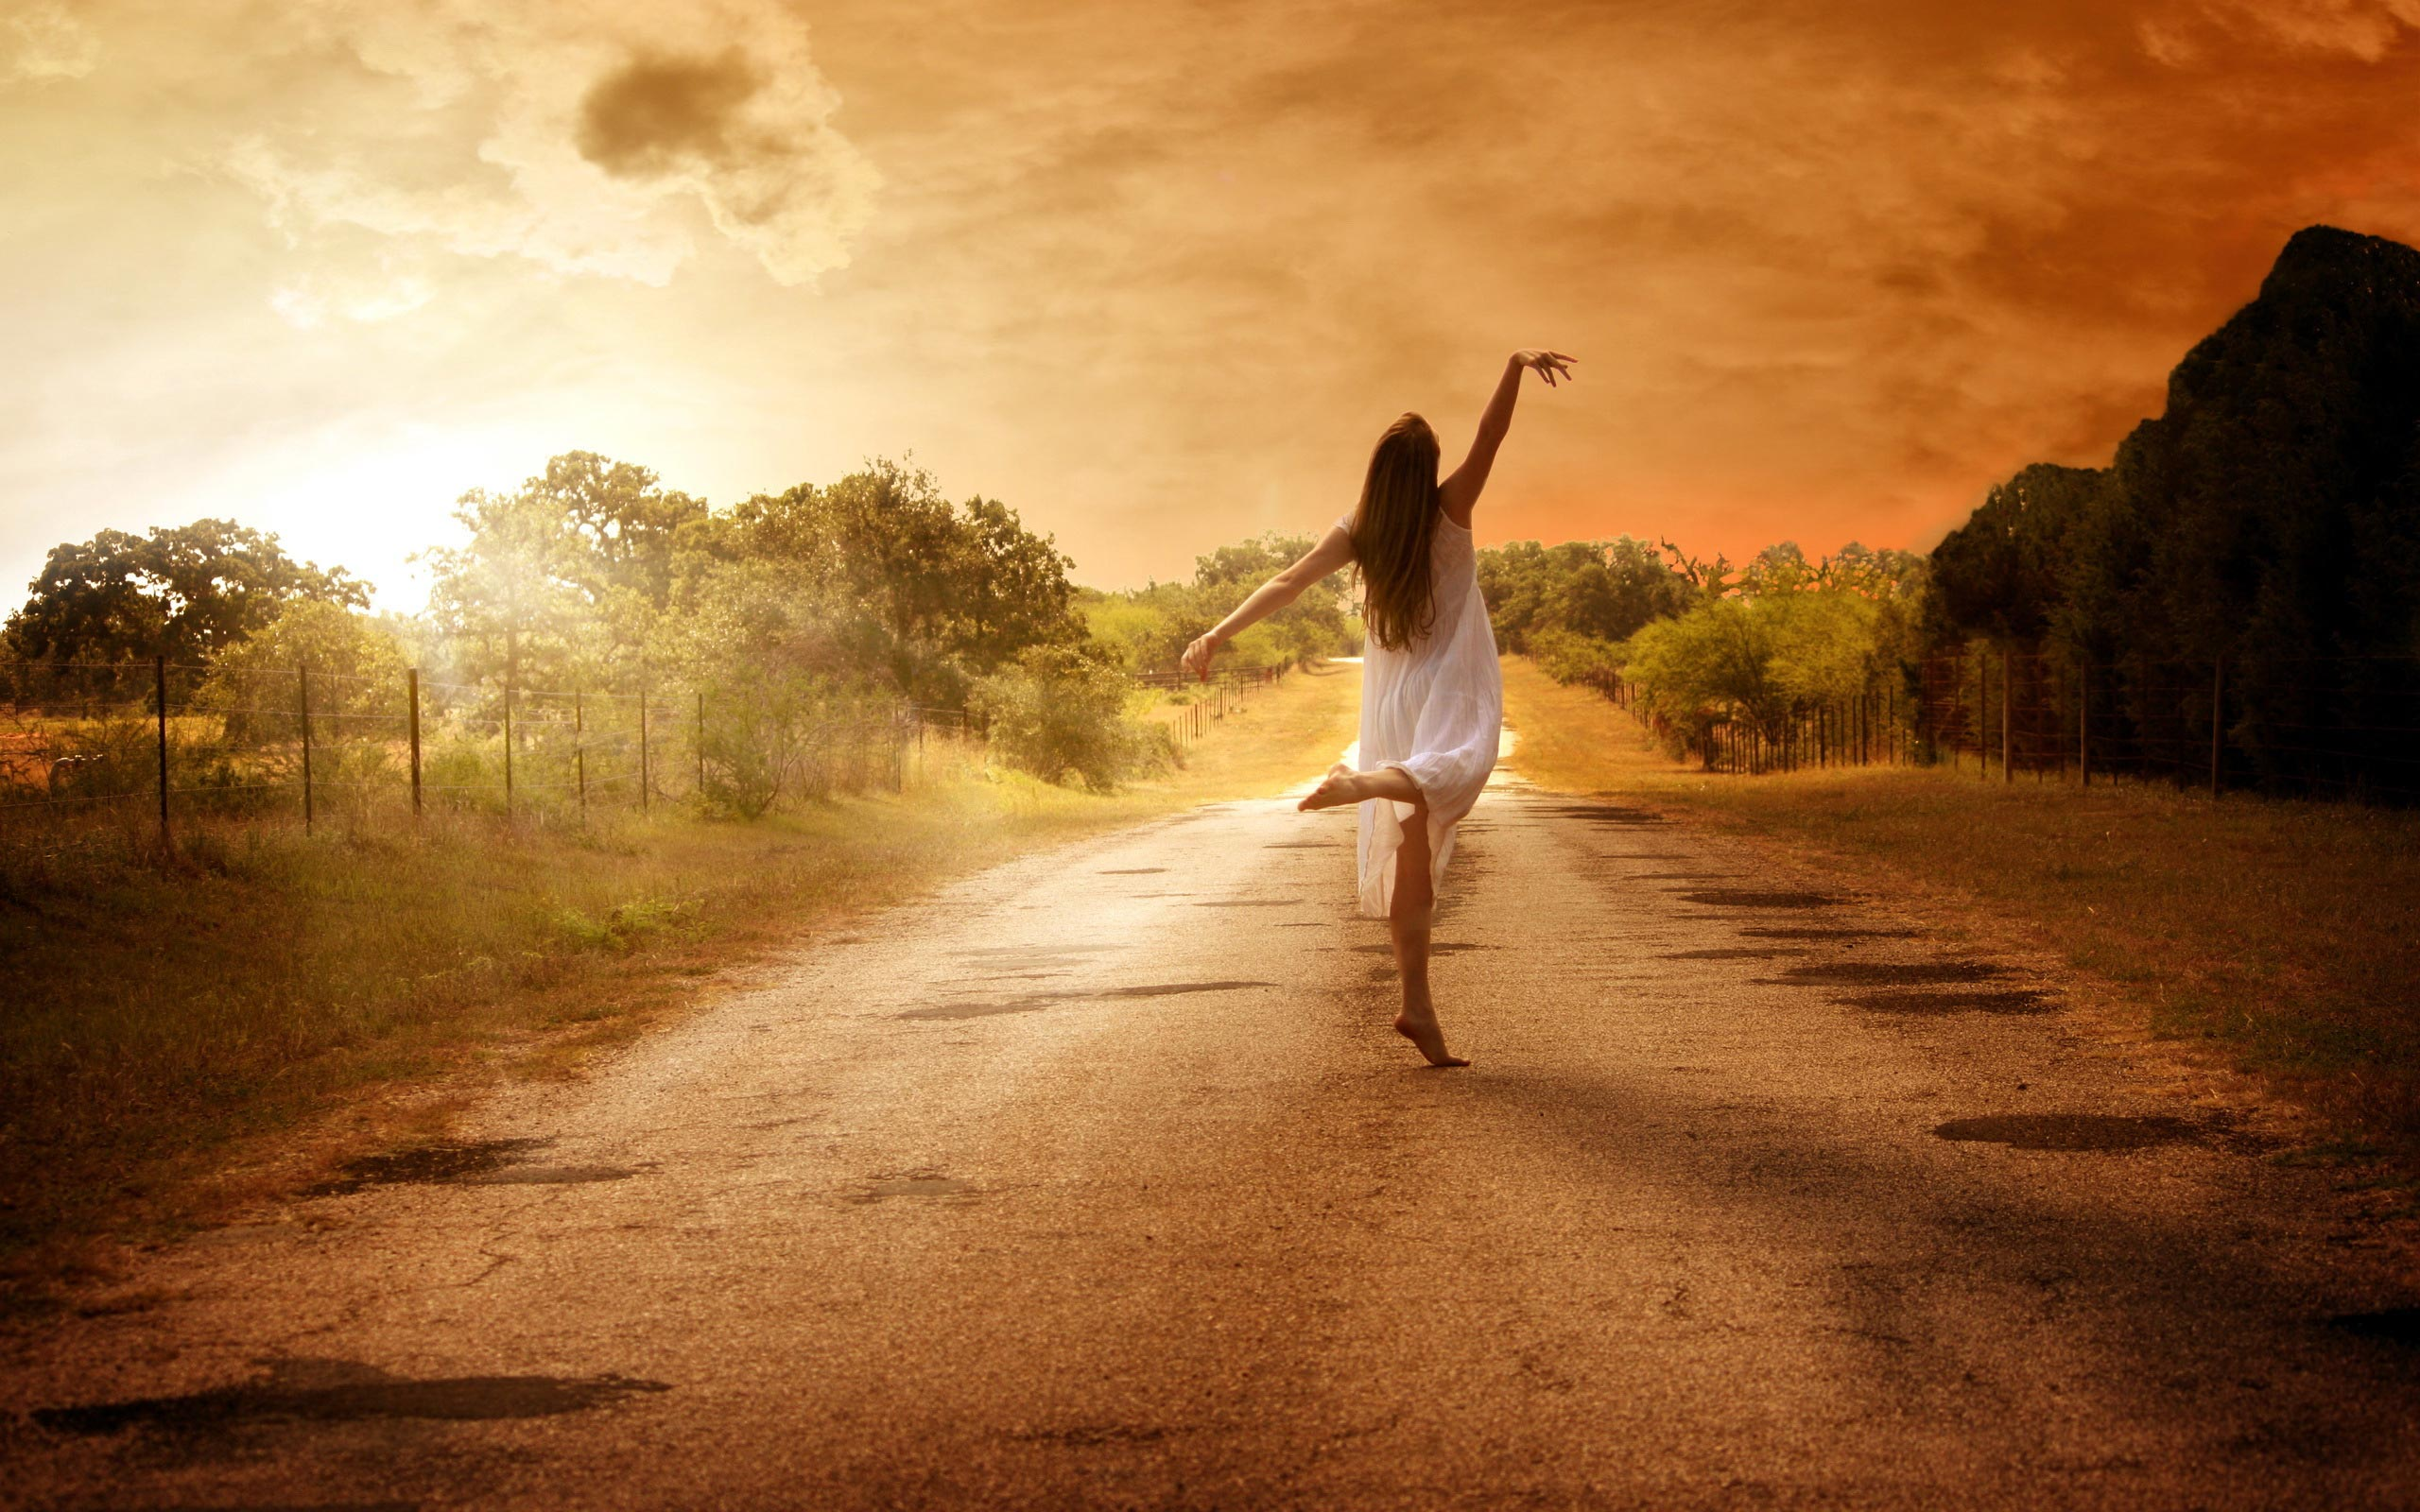 Road-Lonely-Dance-Sunset-Tree-Girl